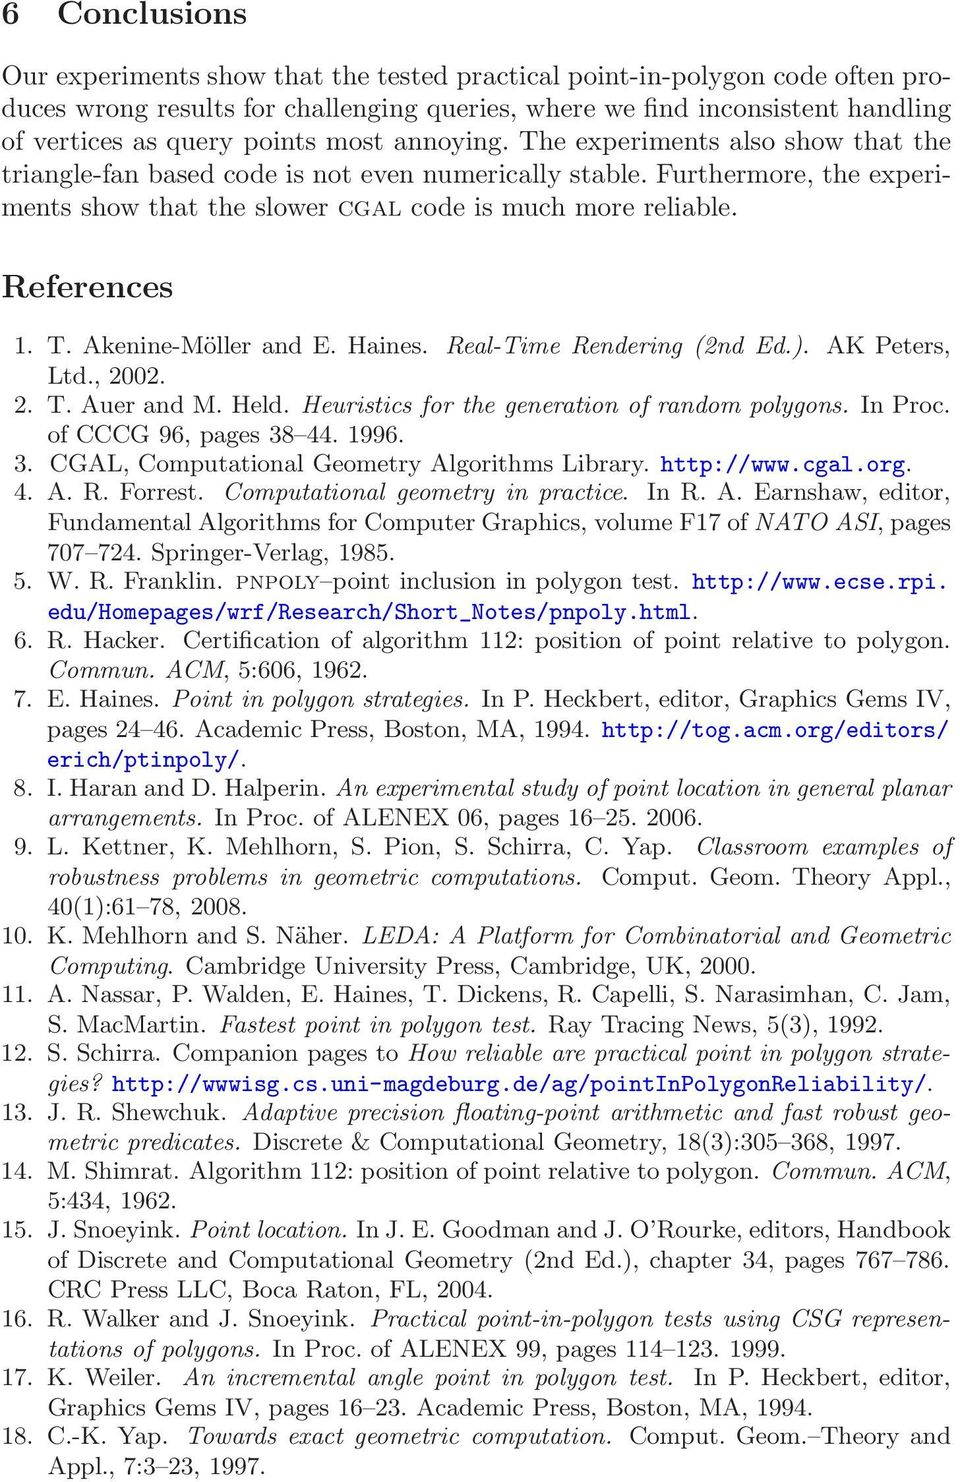 References 1. T. Akenine-Möller and E. Haines. Real-Time Rendering (2nd Ed.). AK Peters, Ltd., 2002. 2. T. Auer and M. Held. Heuristics for the generation of random polygons. In Proc.